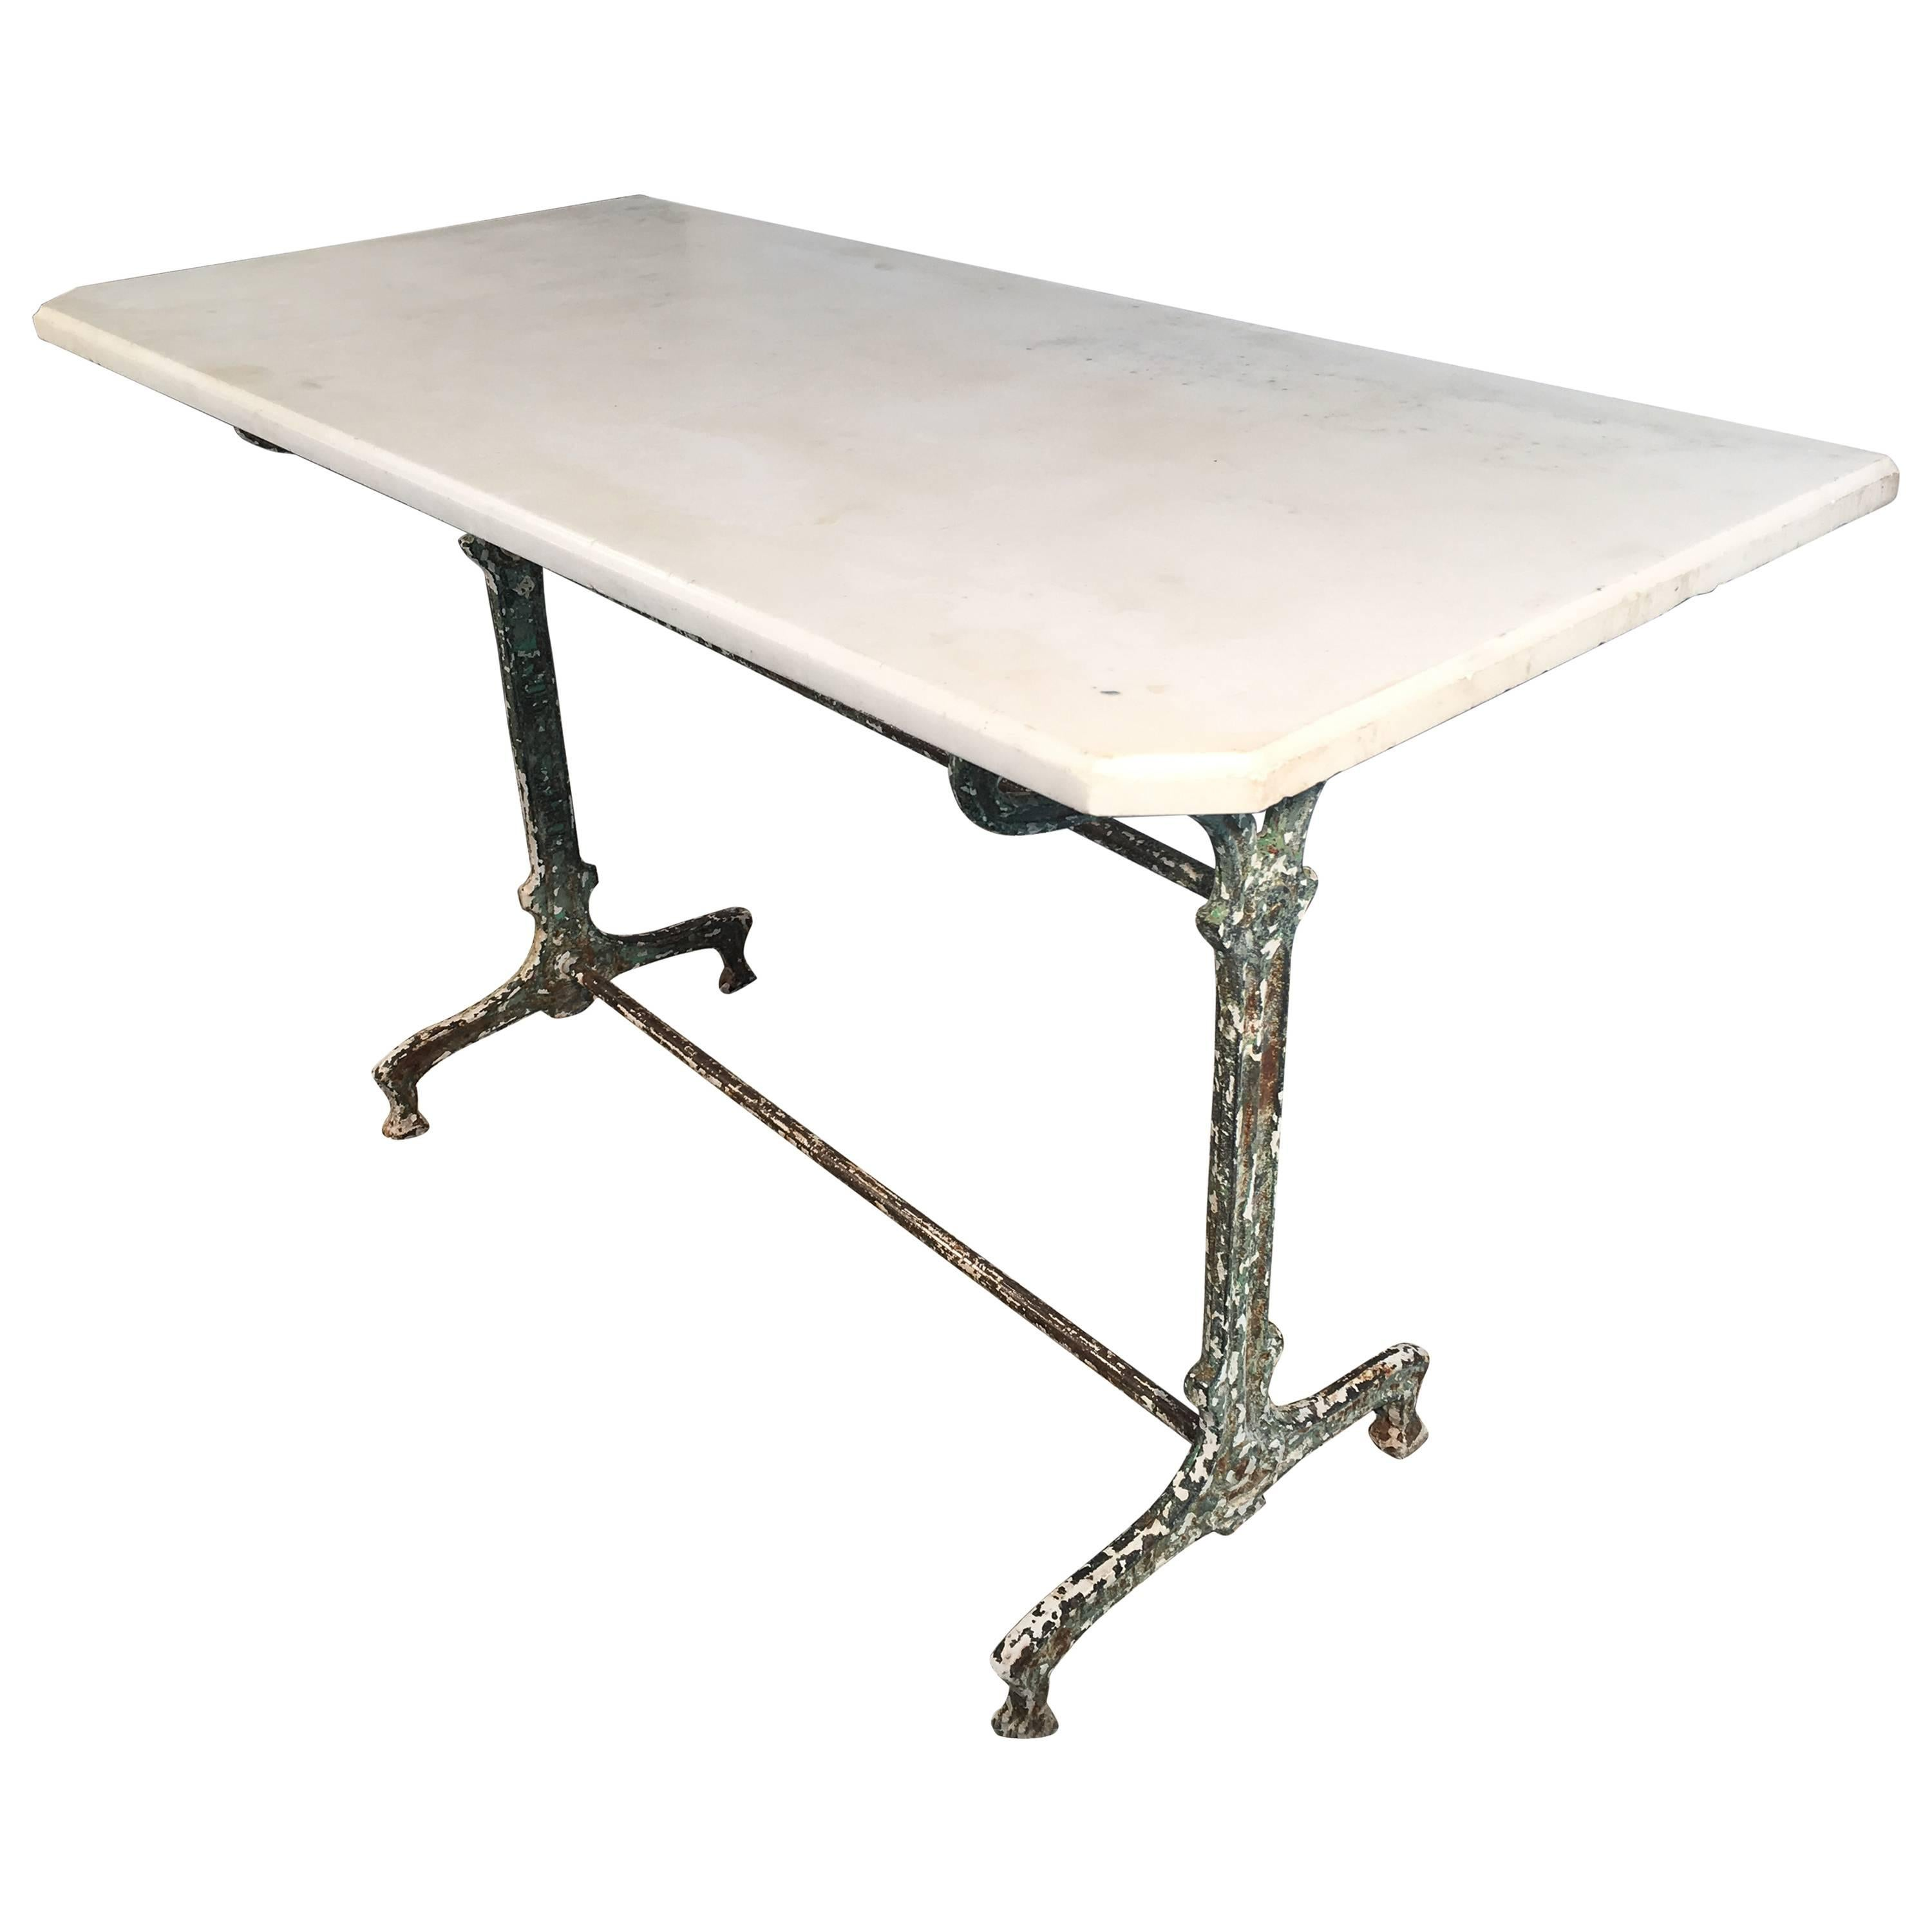 French Art Nouveau Cast Iron Table with Antique Marble Top